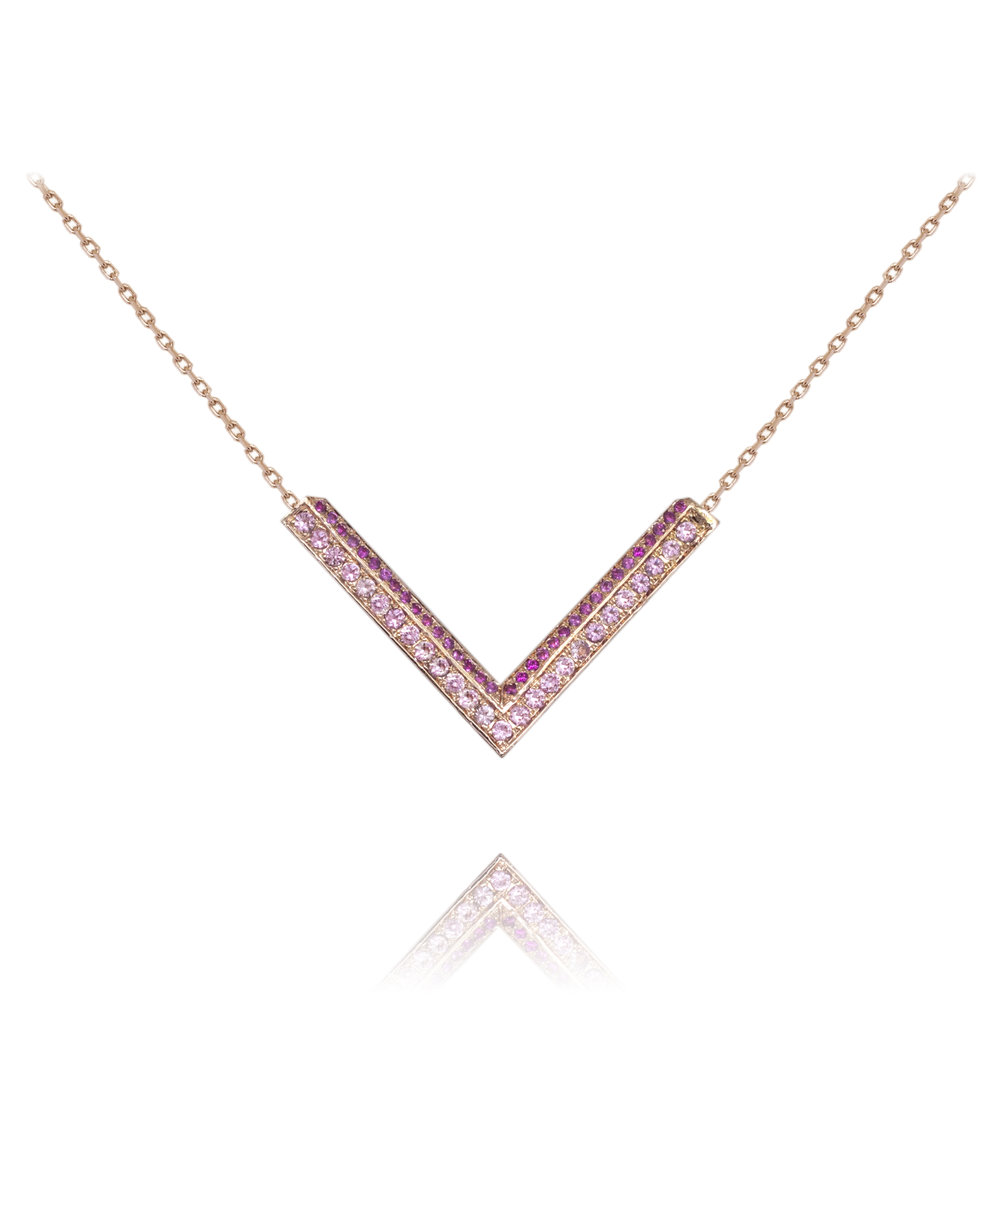 Necklace  18KT Rose Gold, Pink Sapphires  REF. MOV266